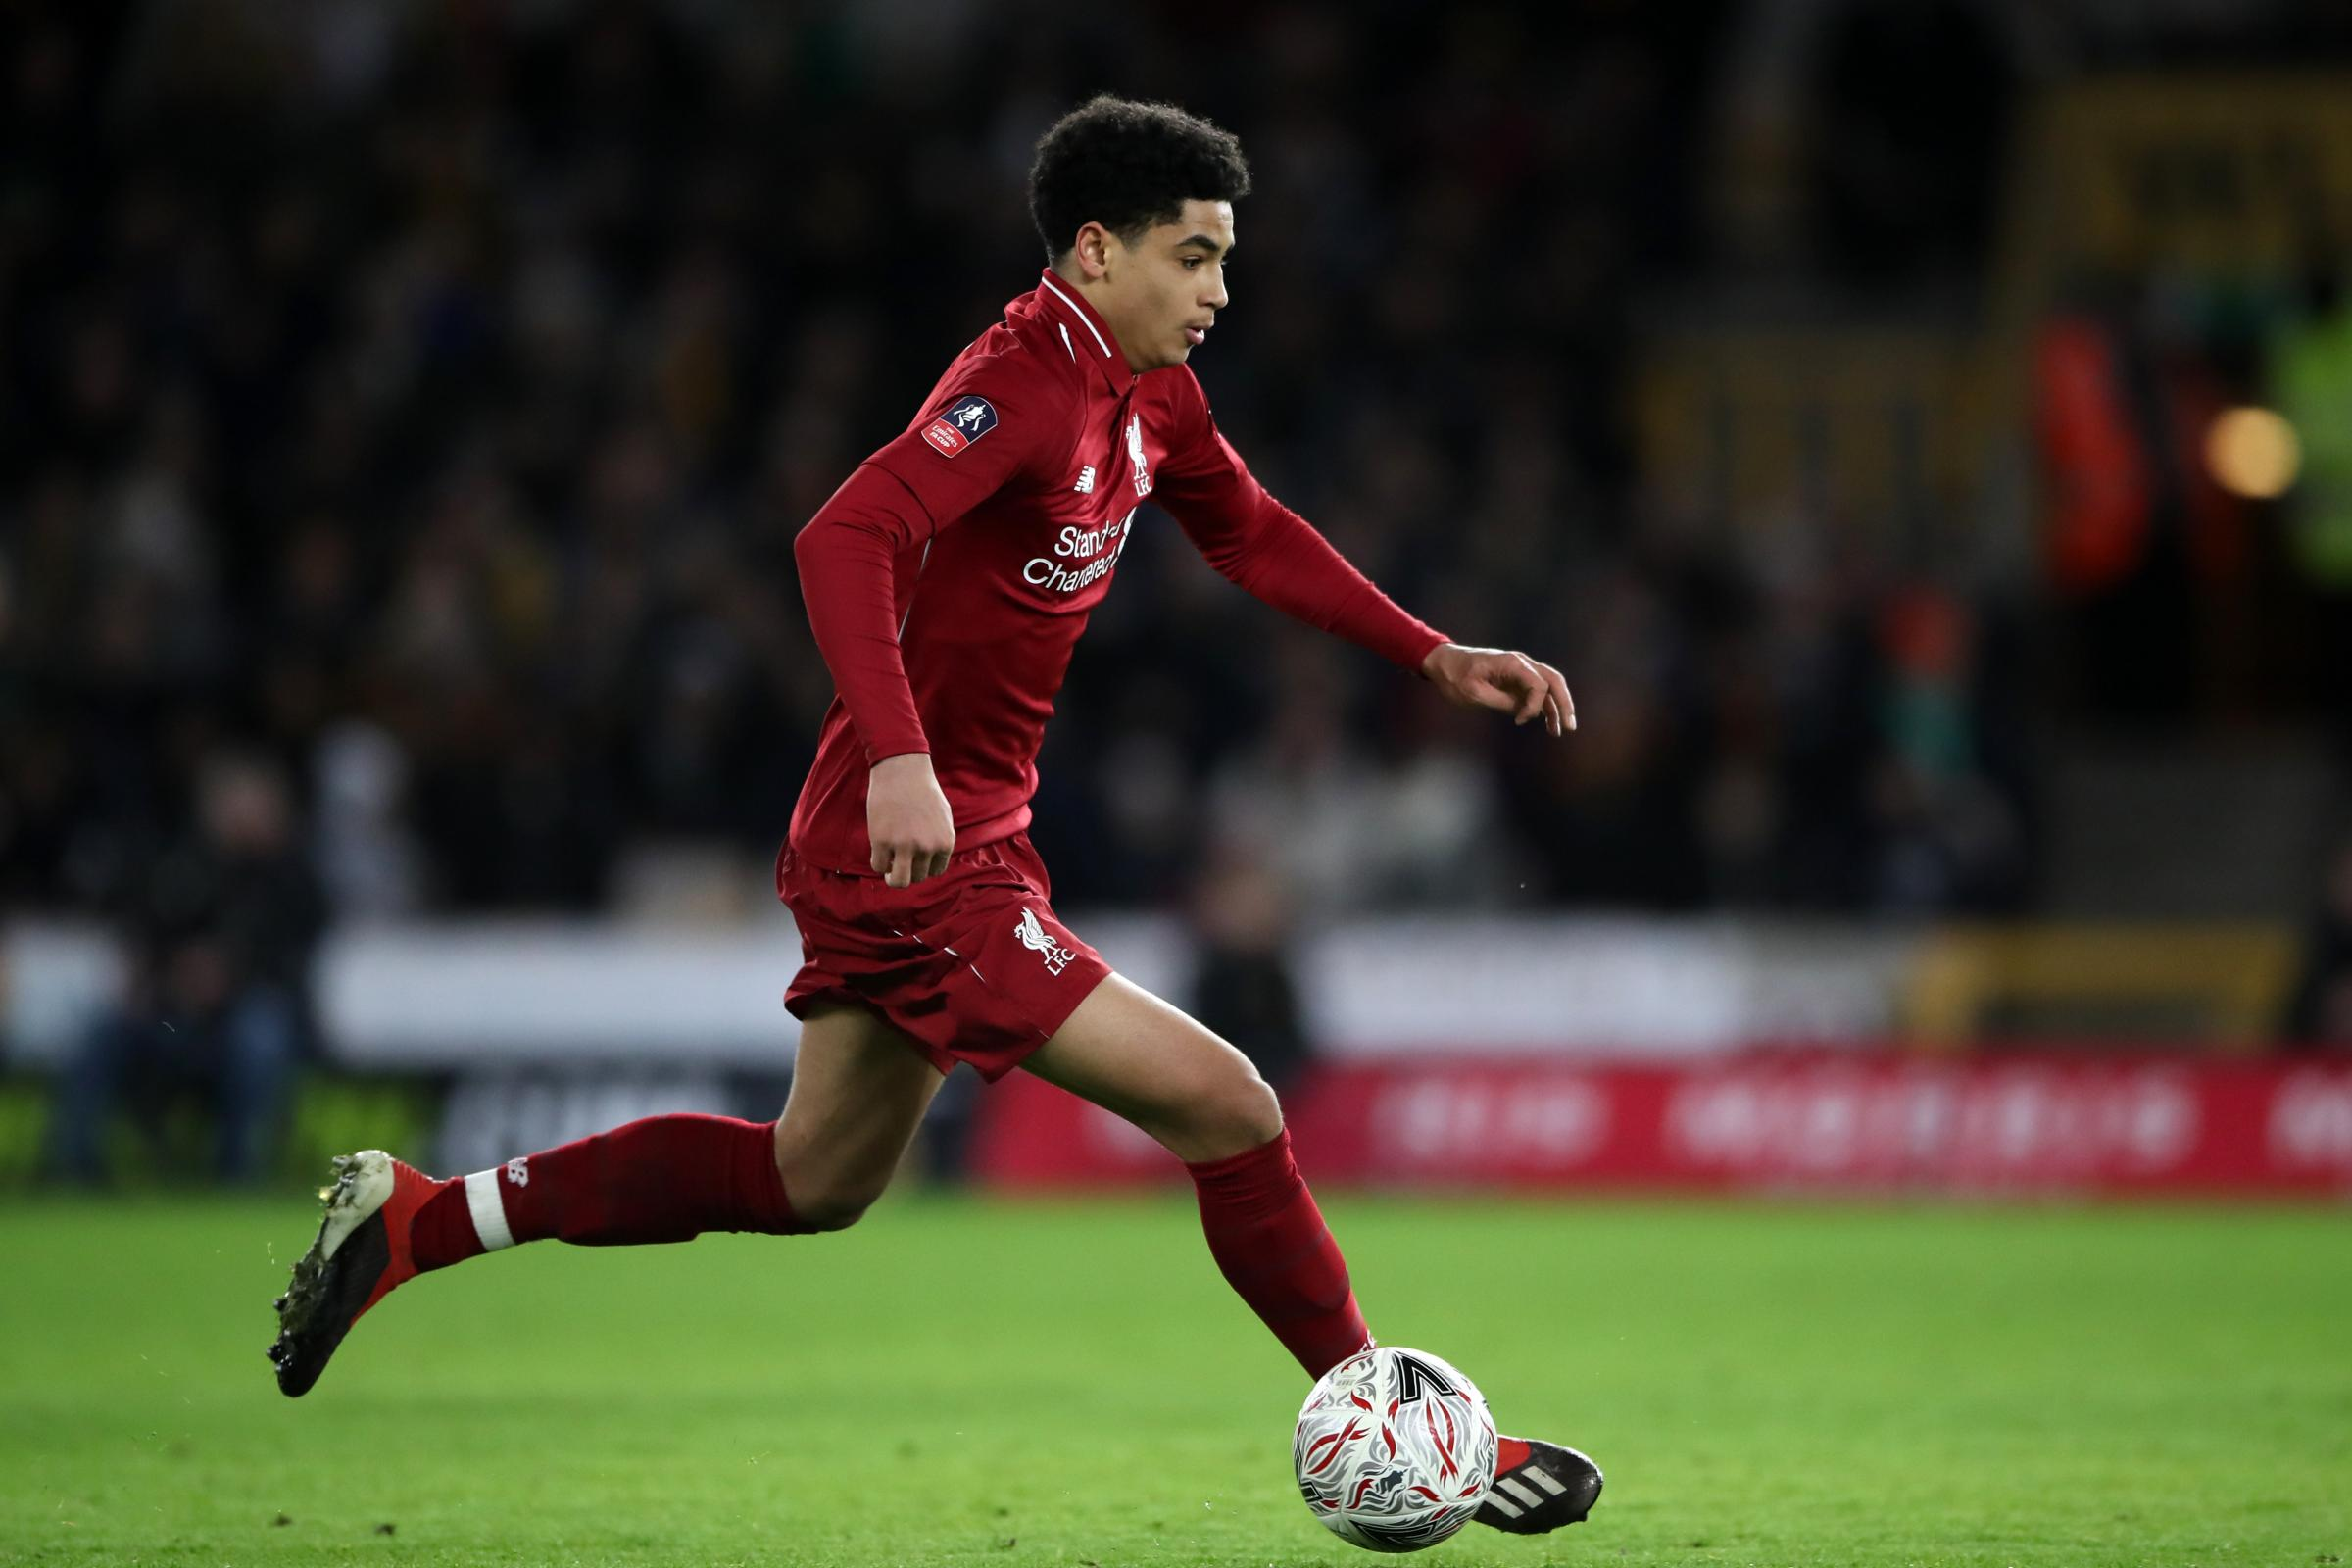 Teenagerr Ki-Jana Hoever has made rapid progress since joining Liverpool in the summer.